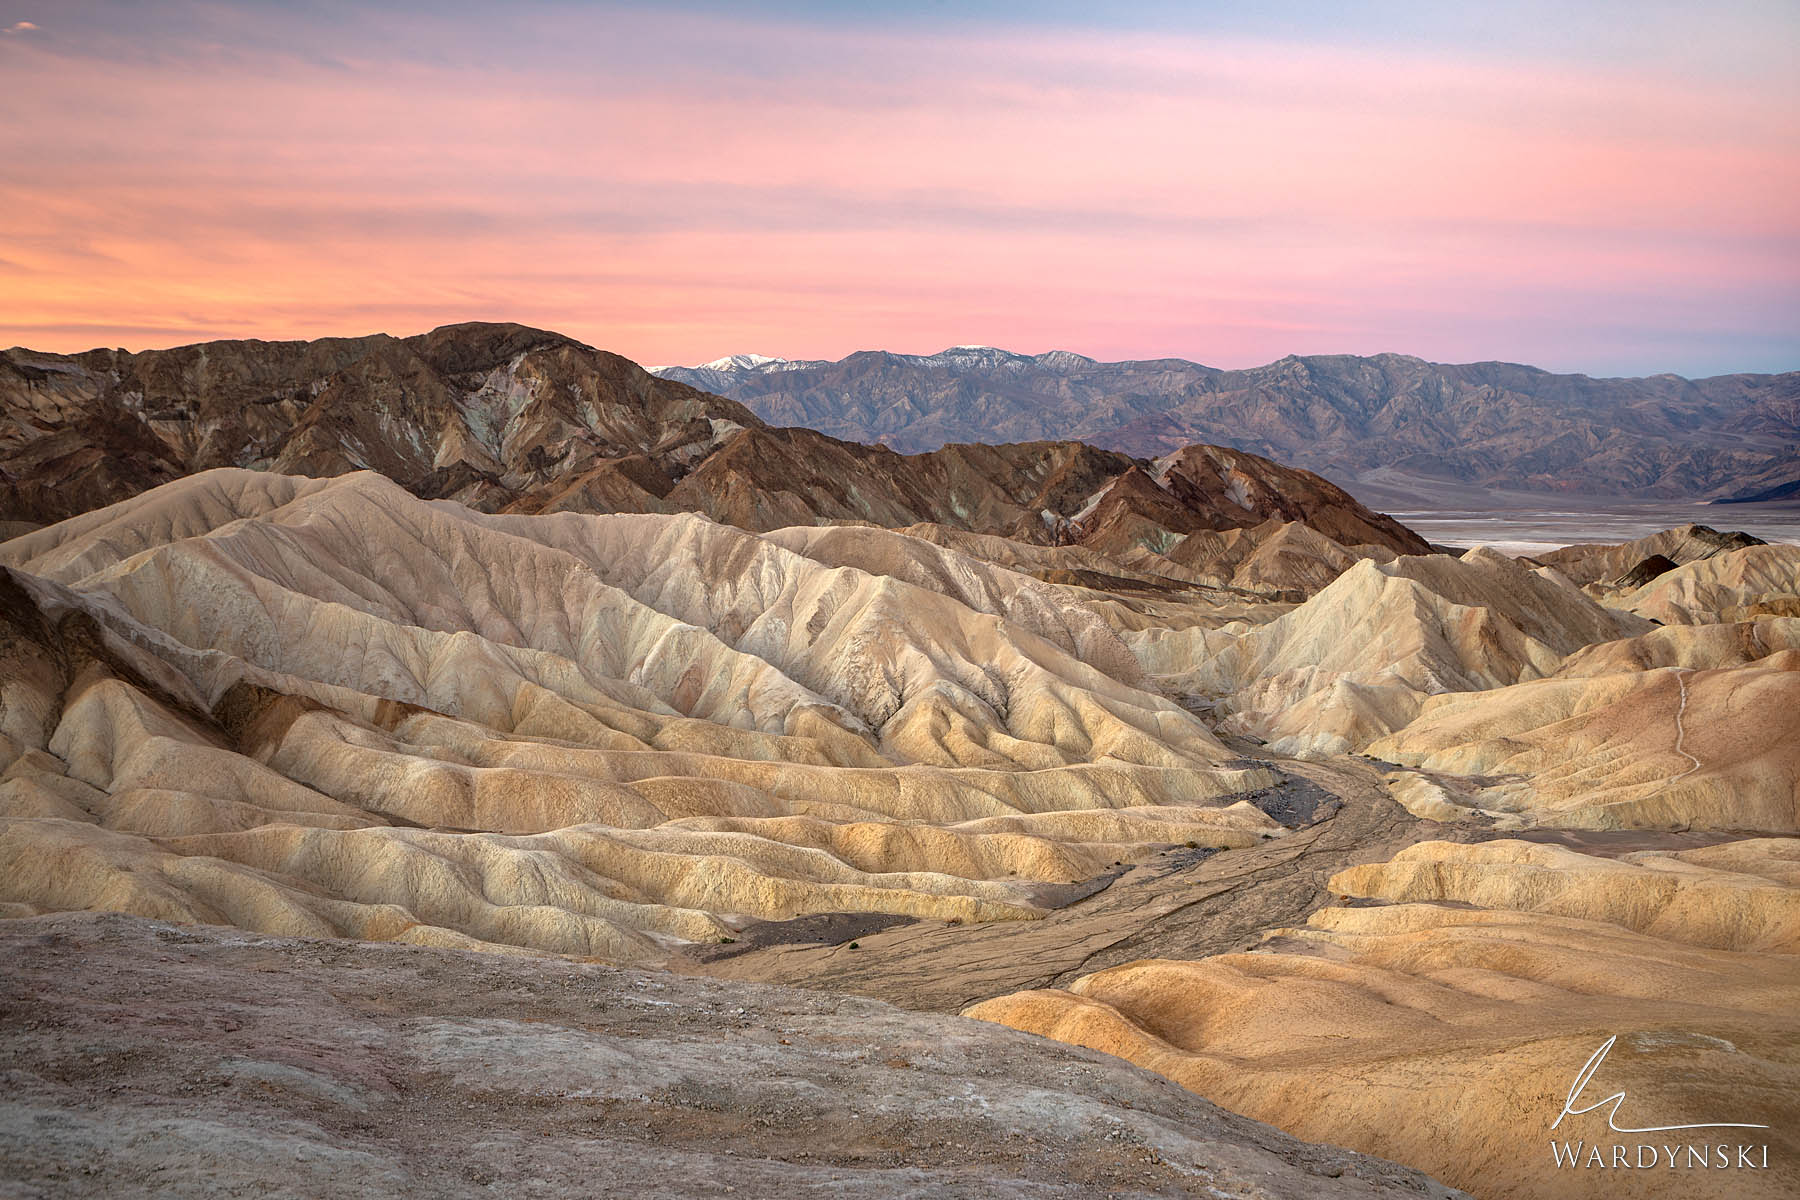 Fine Art Print | Limited Edition of 100  Zabriskie Point is one of those places that seems too unusual to be an actual place...